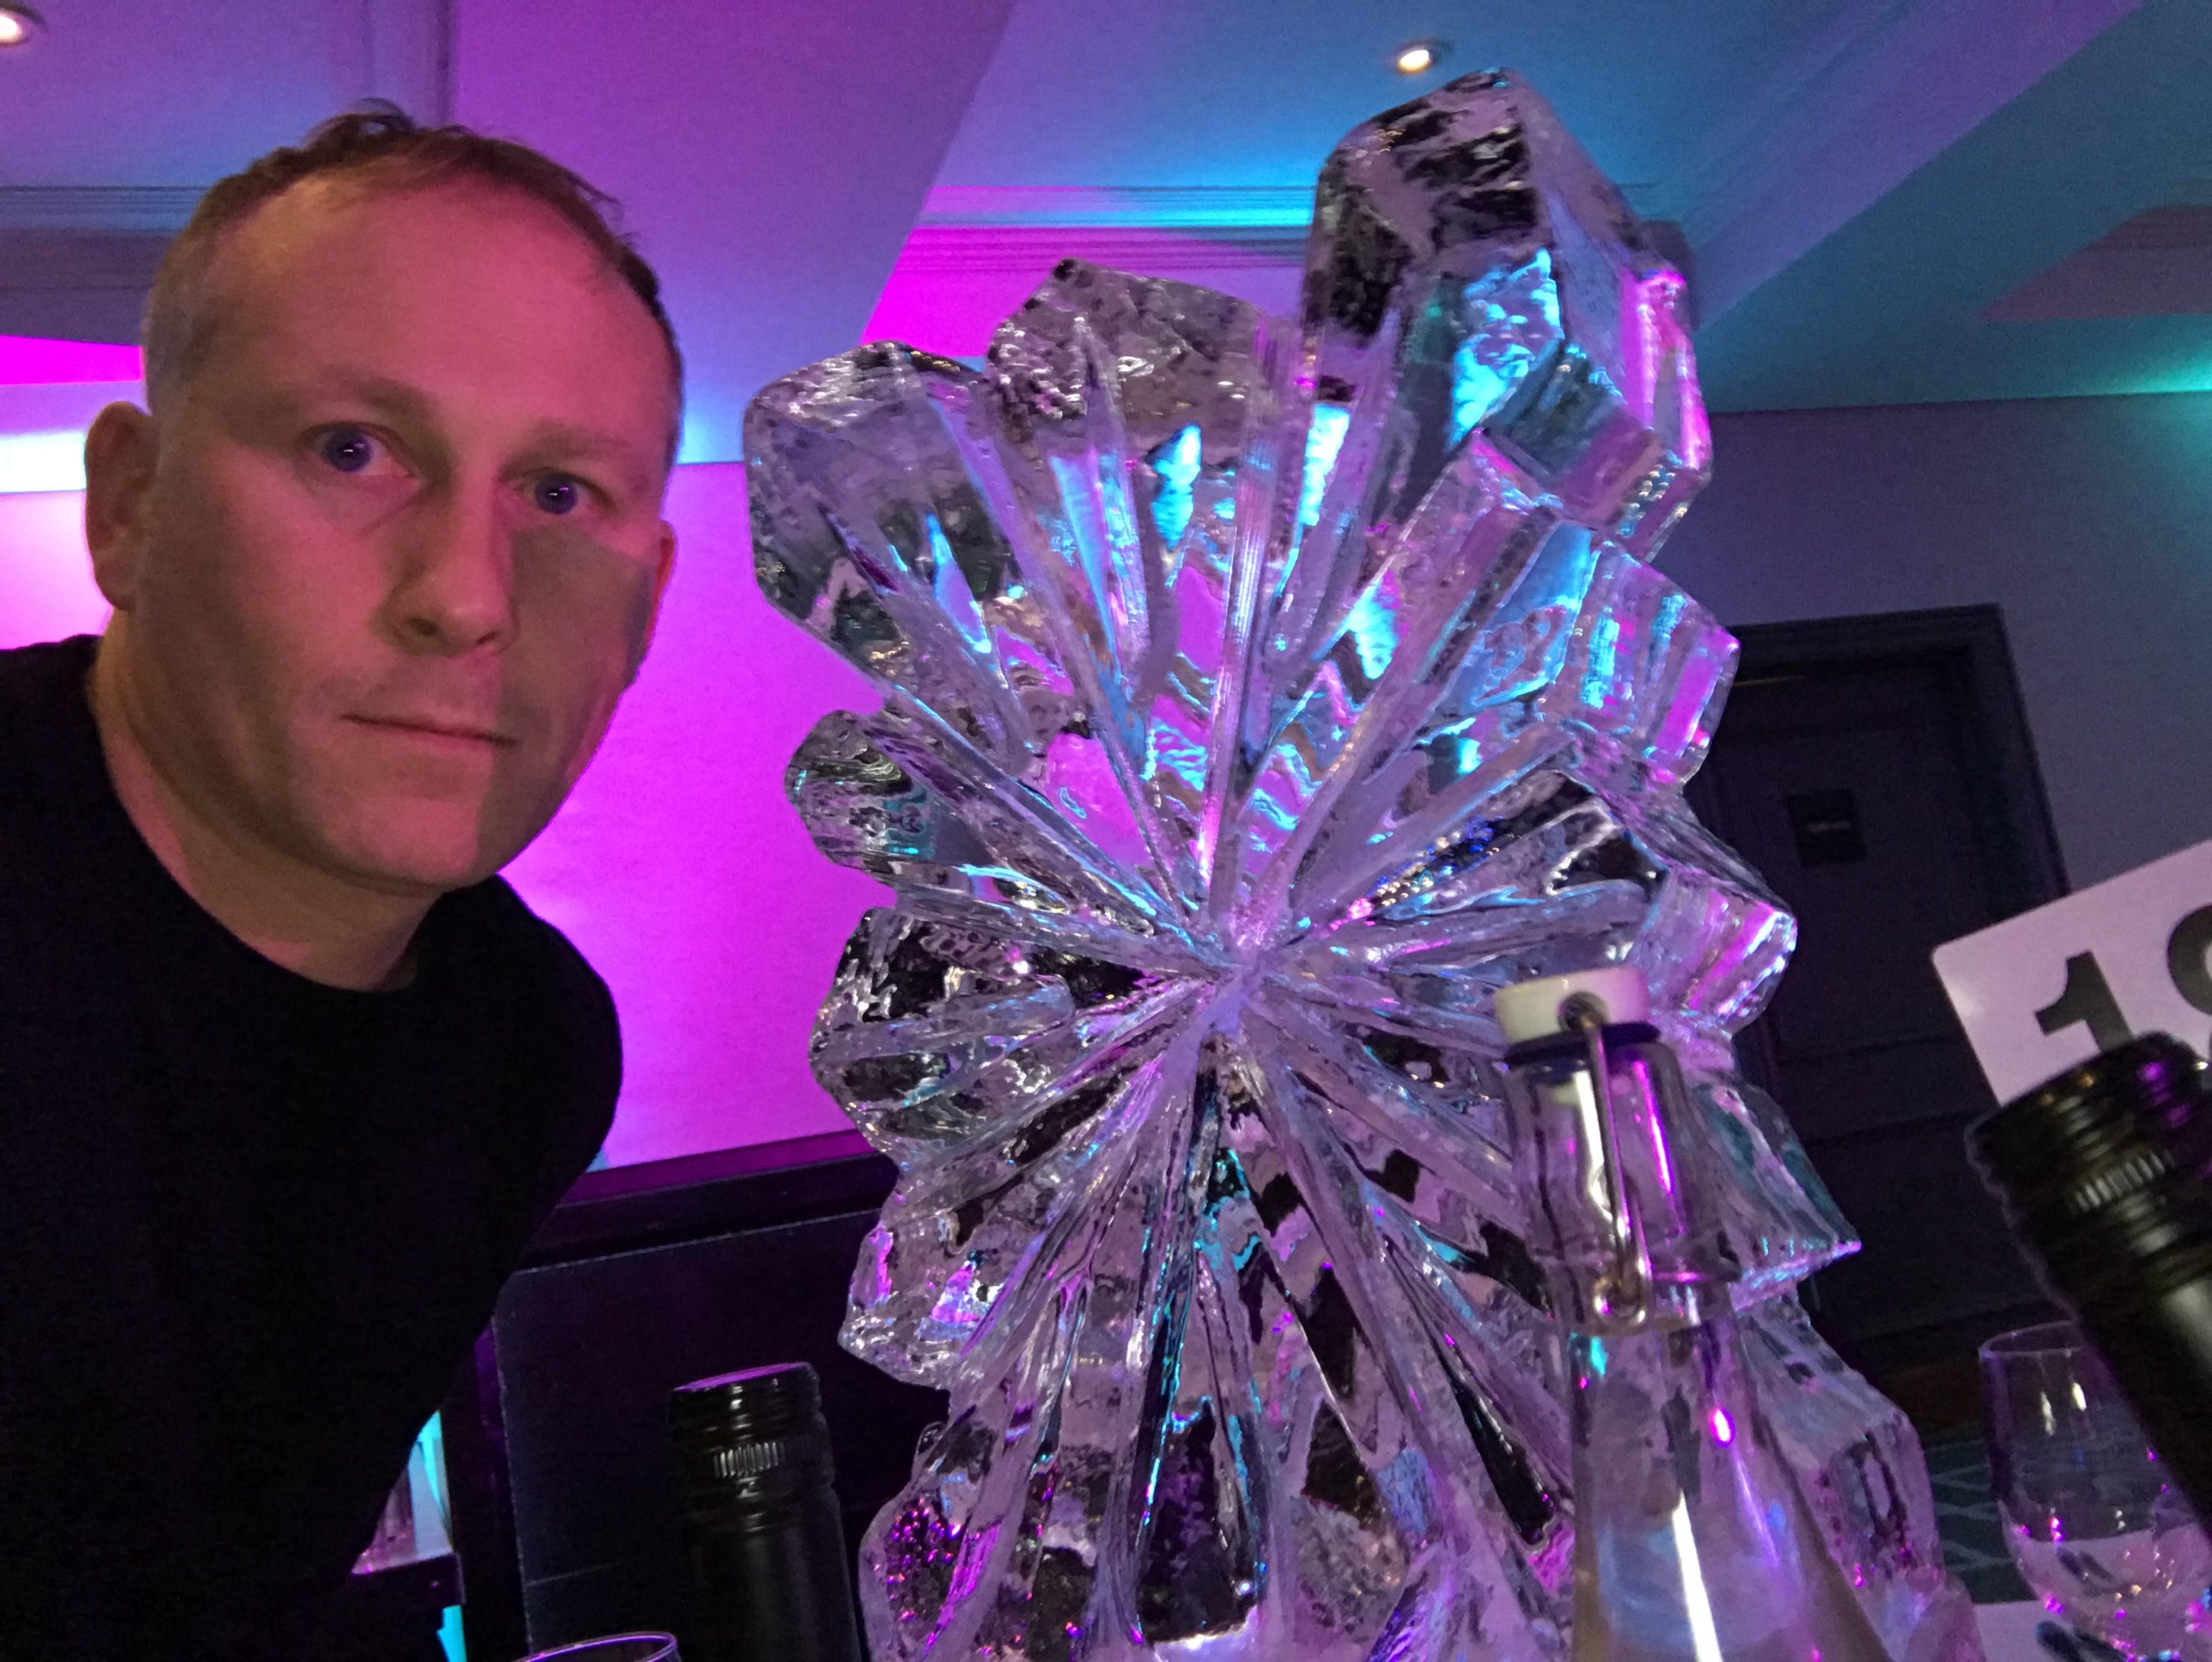 Snowflake - Ice Luge - Luge for Vodka - Ice Carving Sculpture | Ice Agency